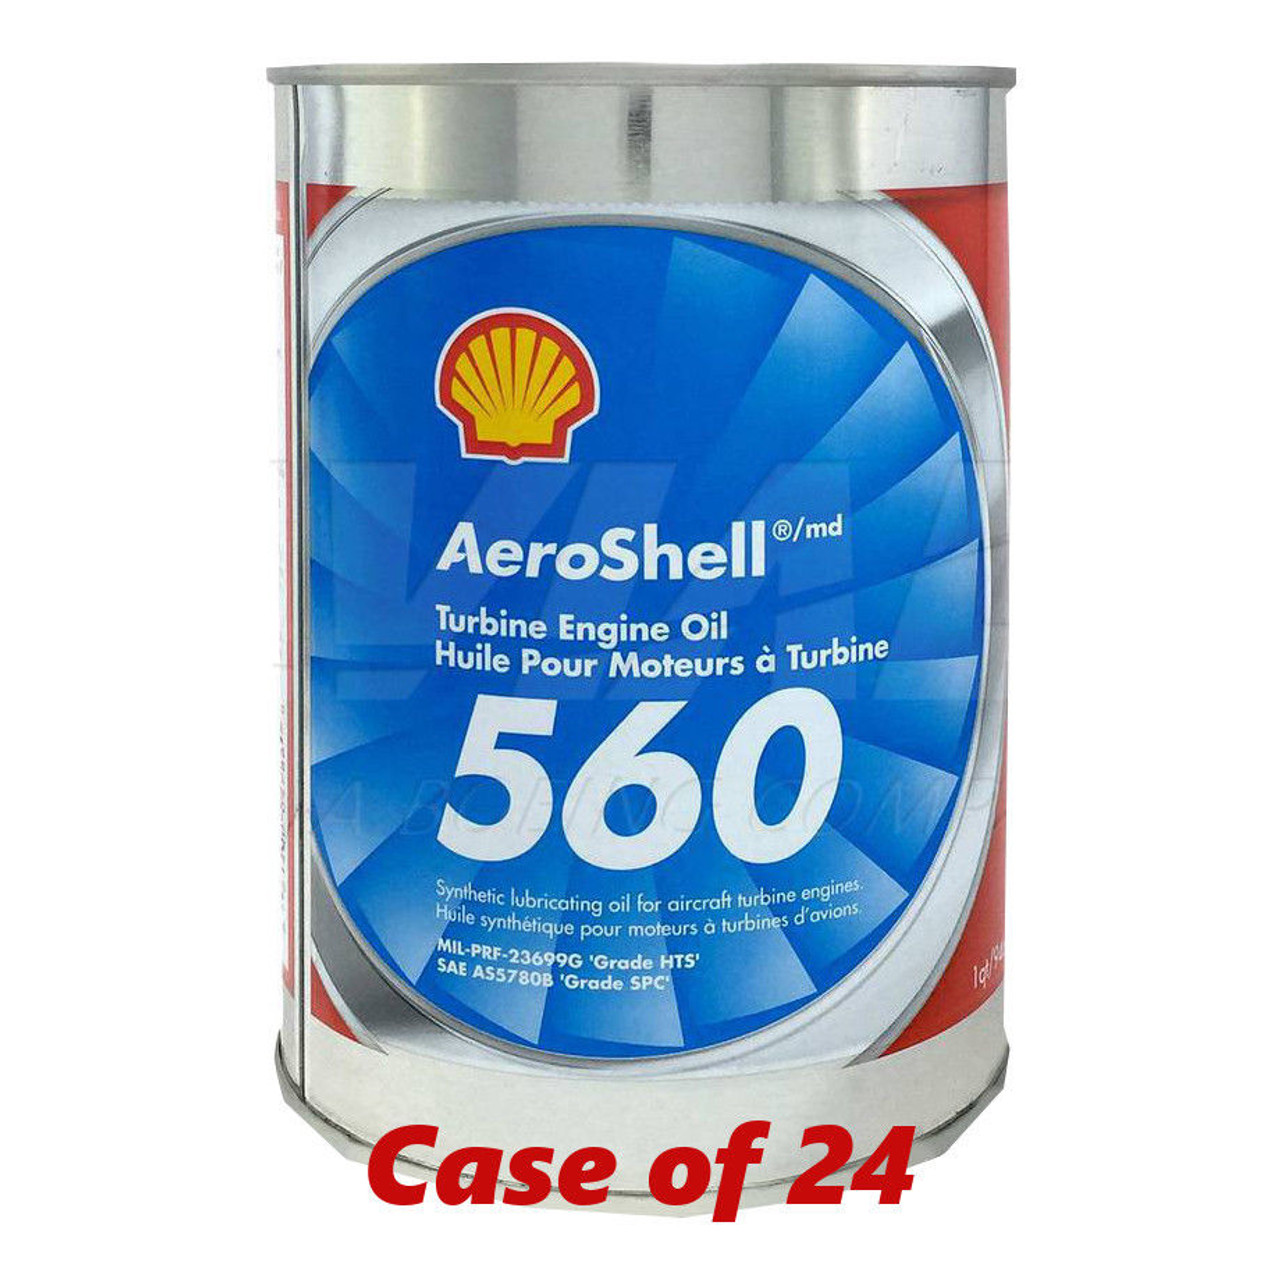 Aeroshell 560 Turbine Oil - Case of 24